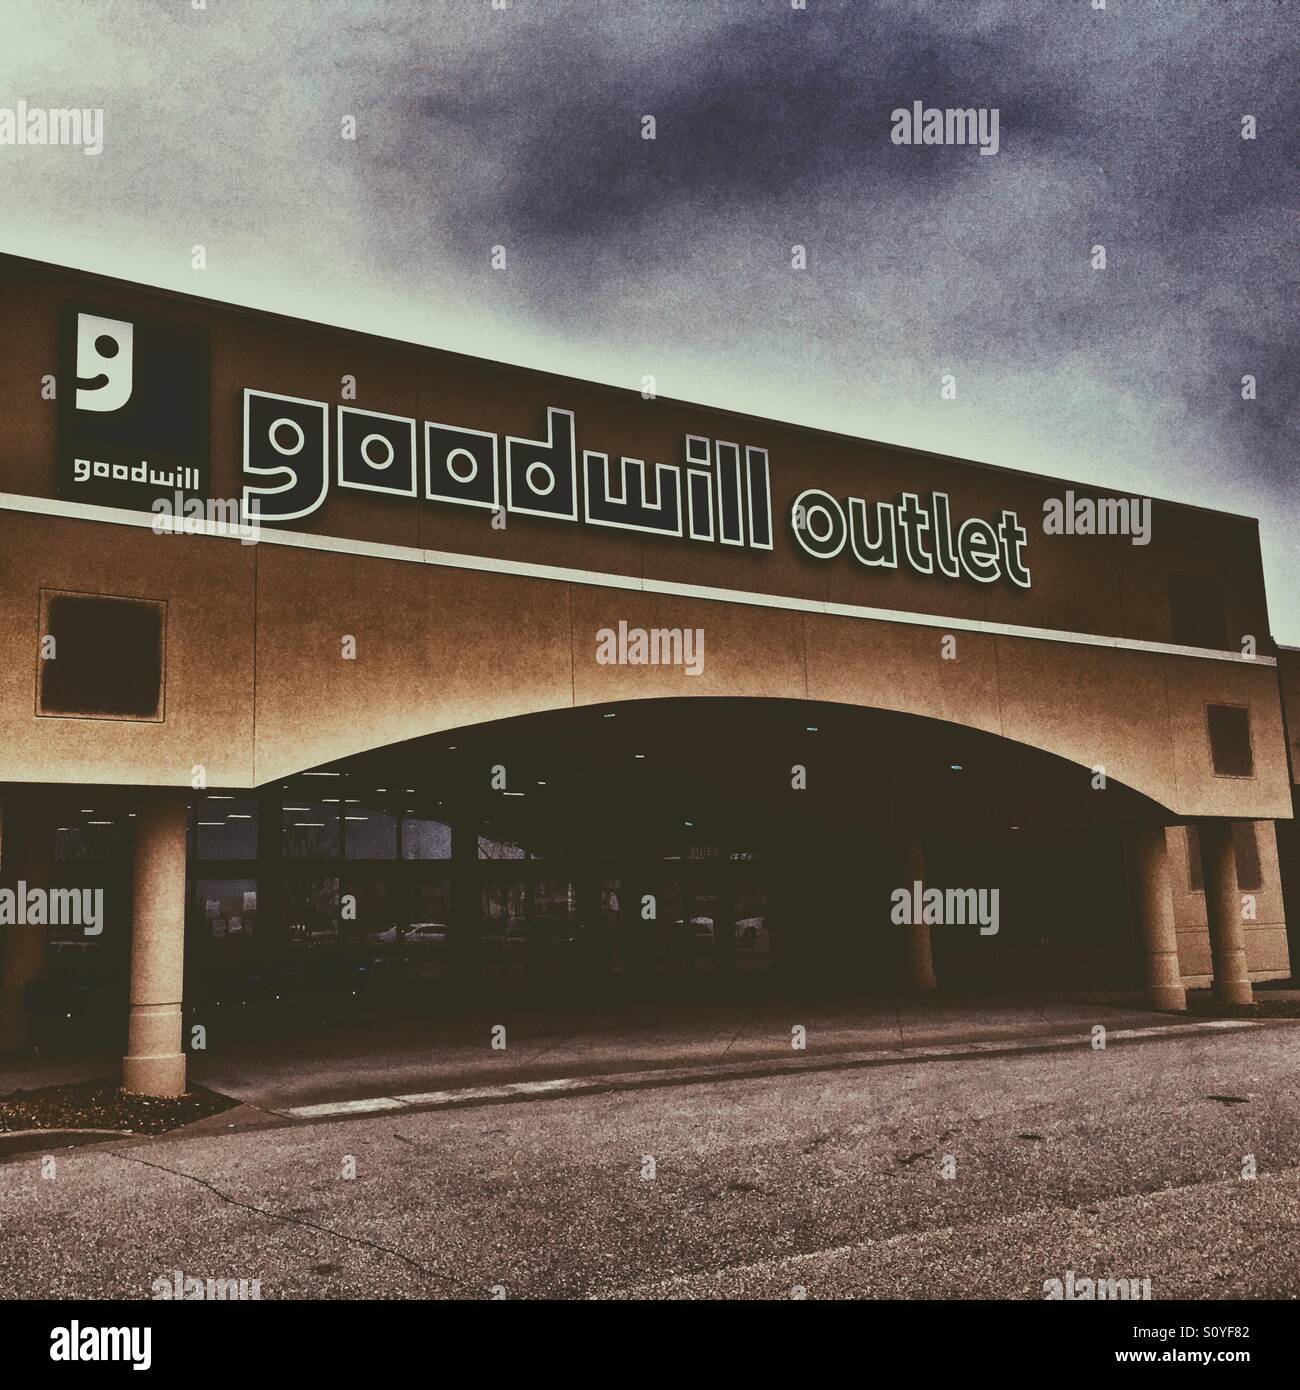 Goodwill Store Storefront Stock Photos & Goodwill Store Storefront ...